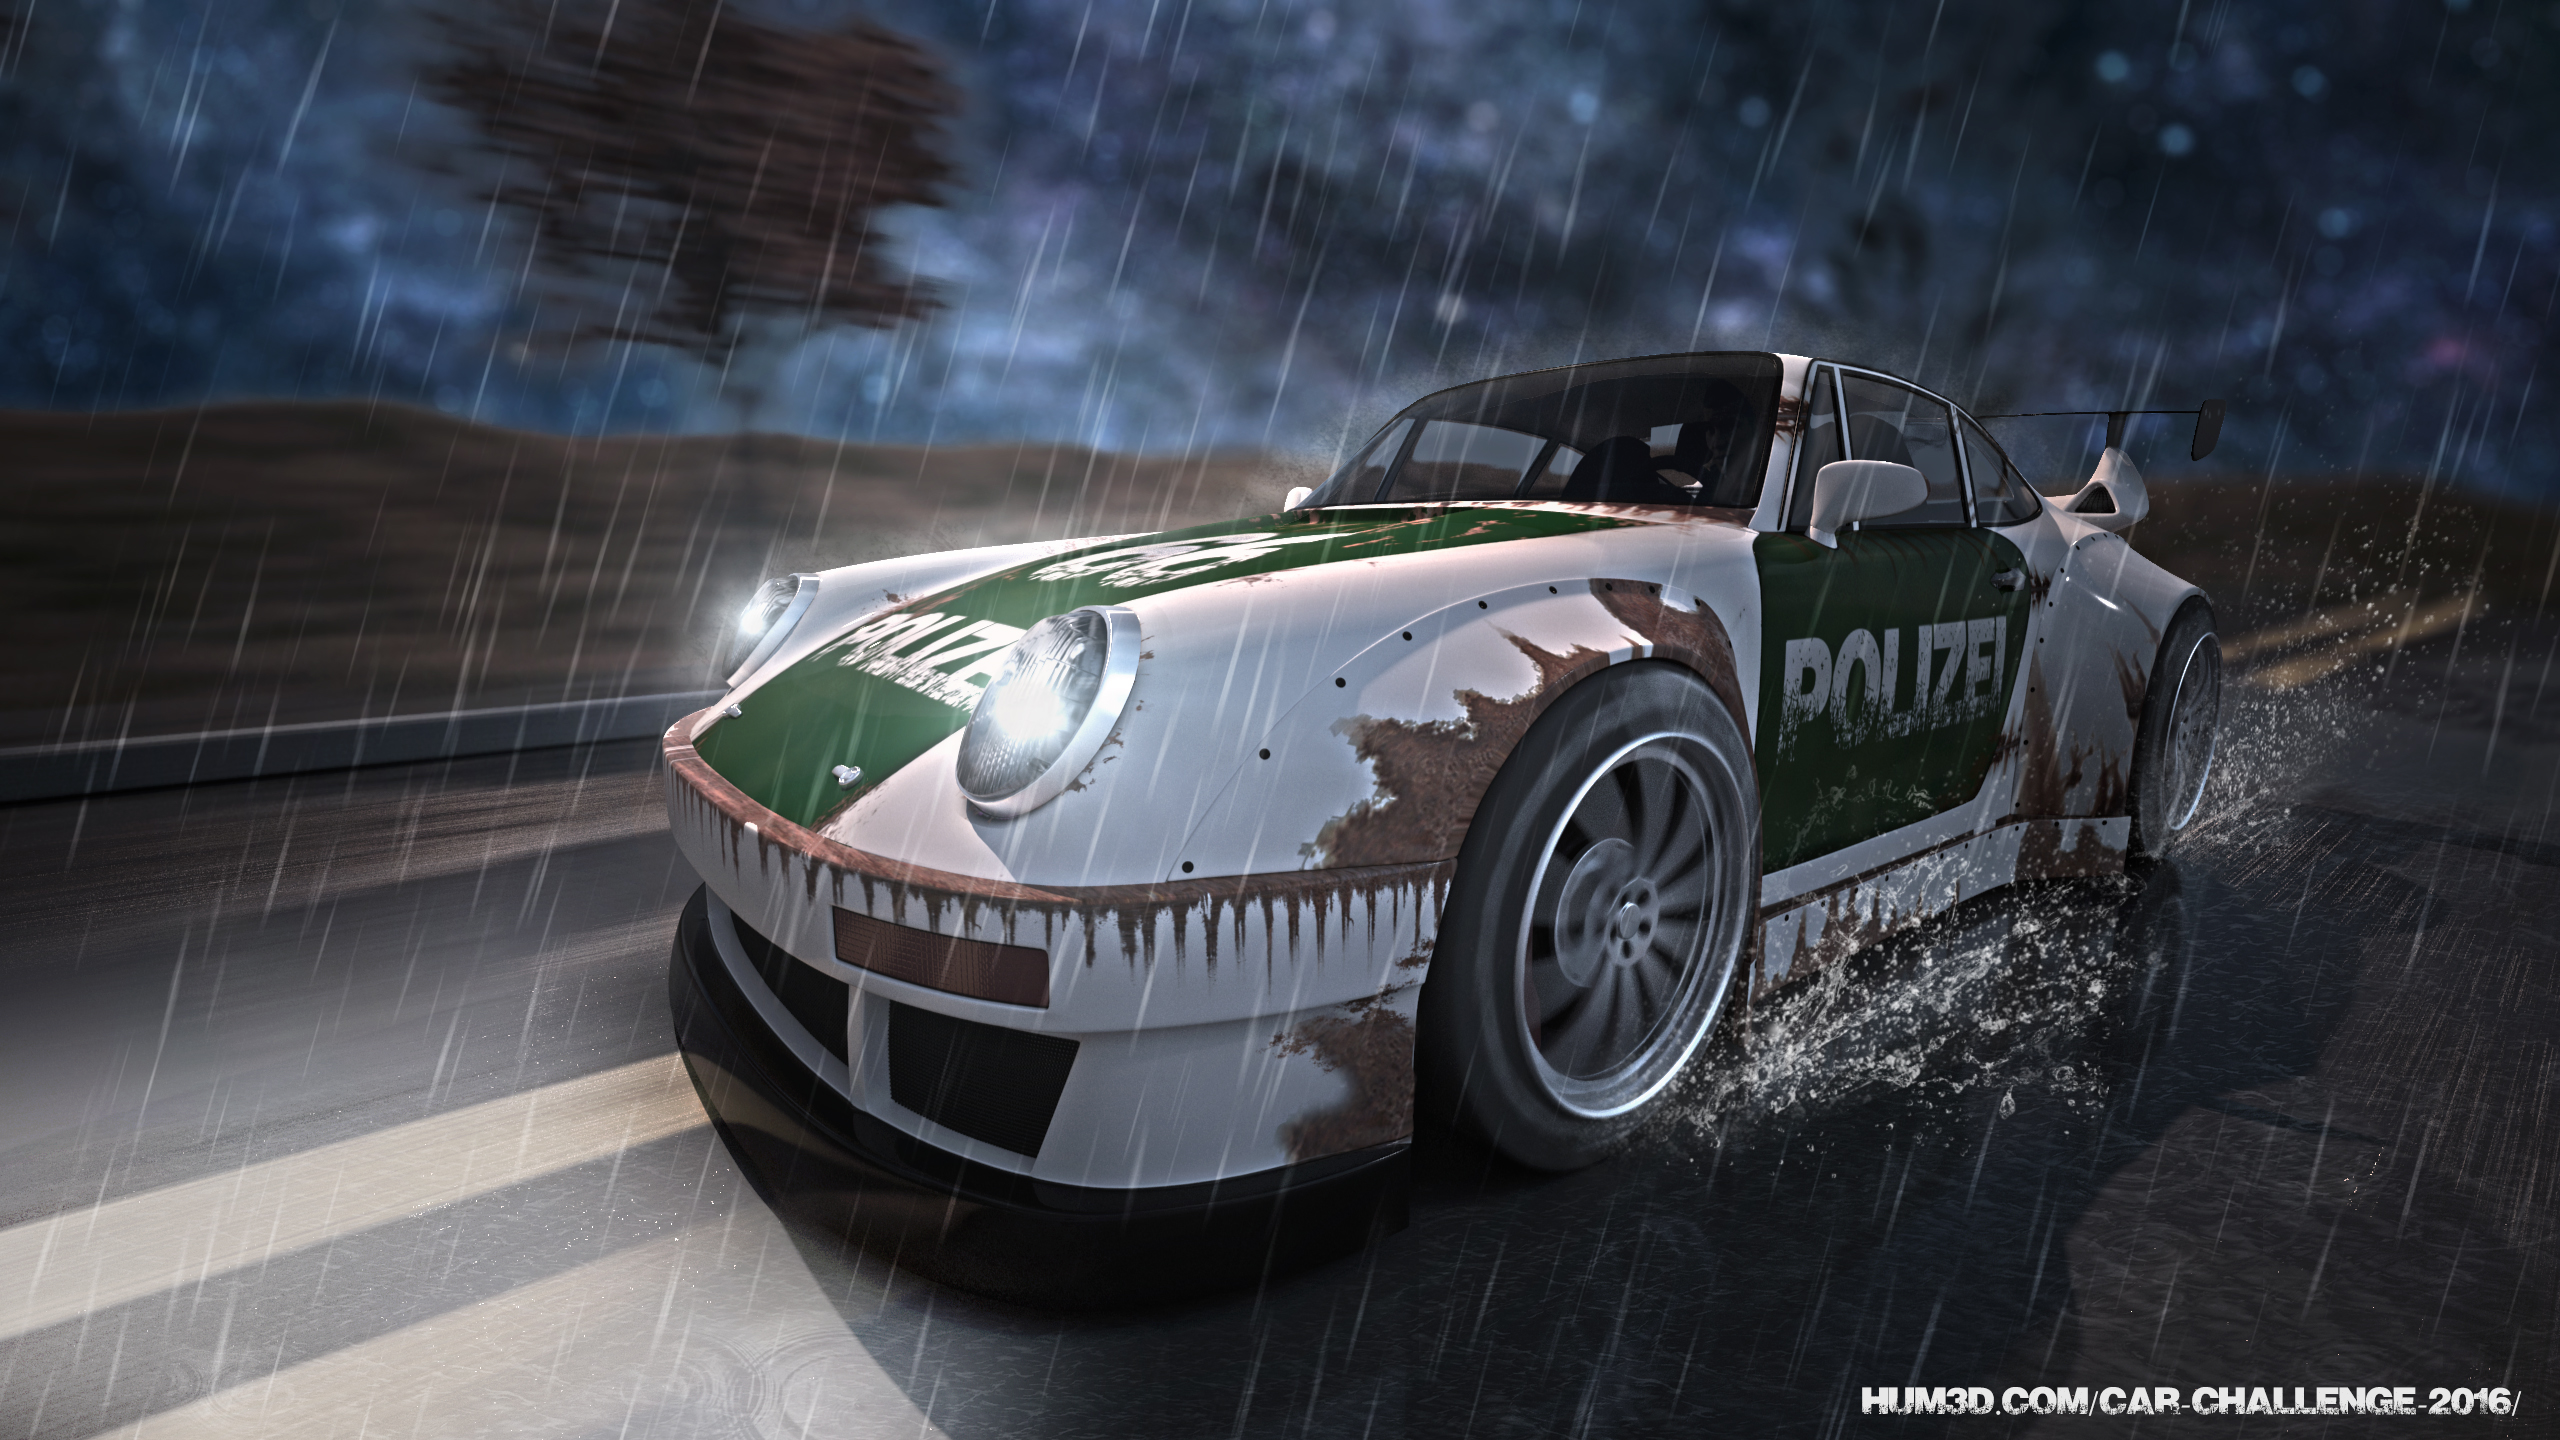 Old police Porsche 993 tuning